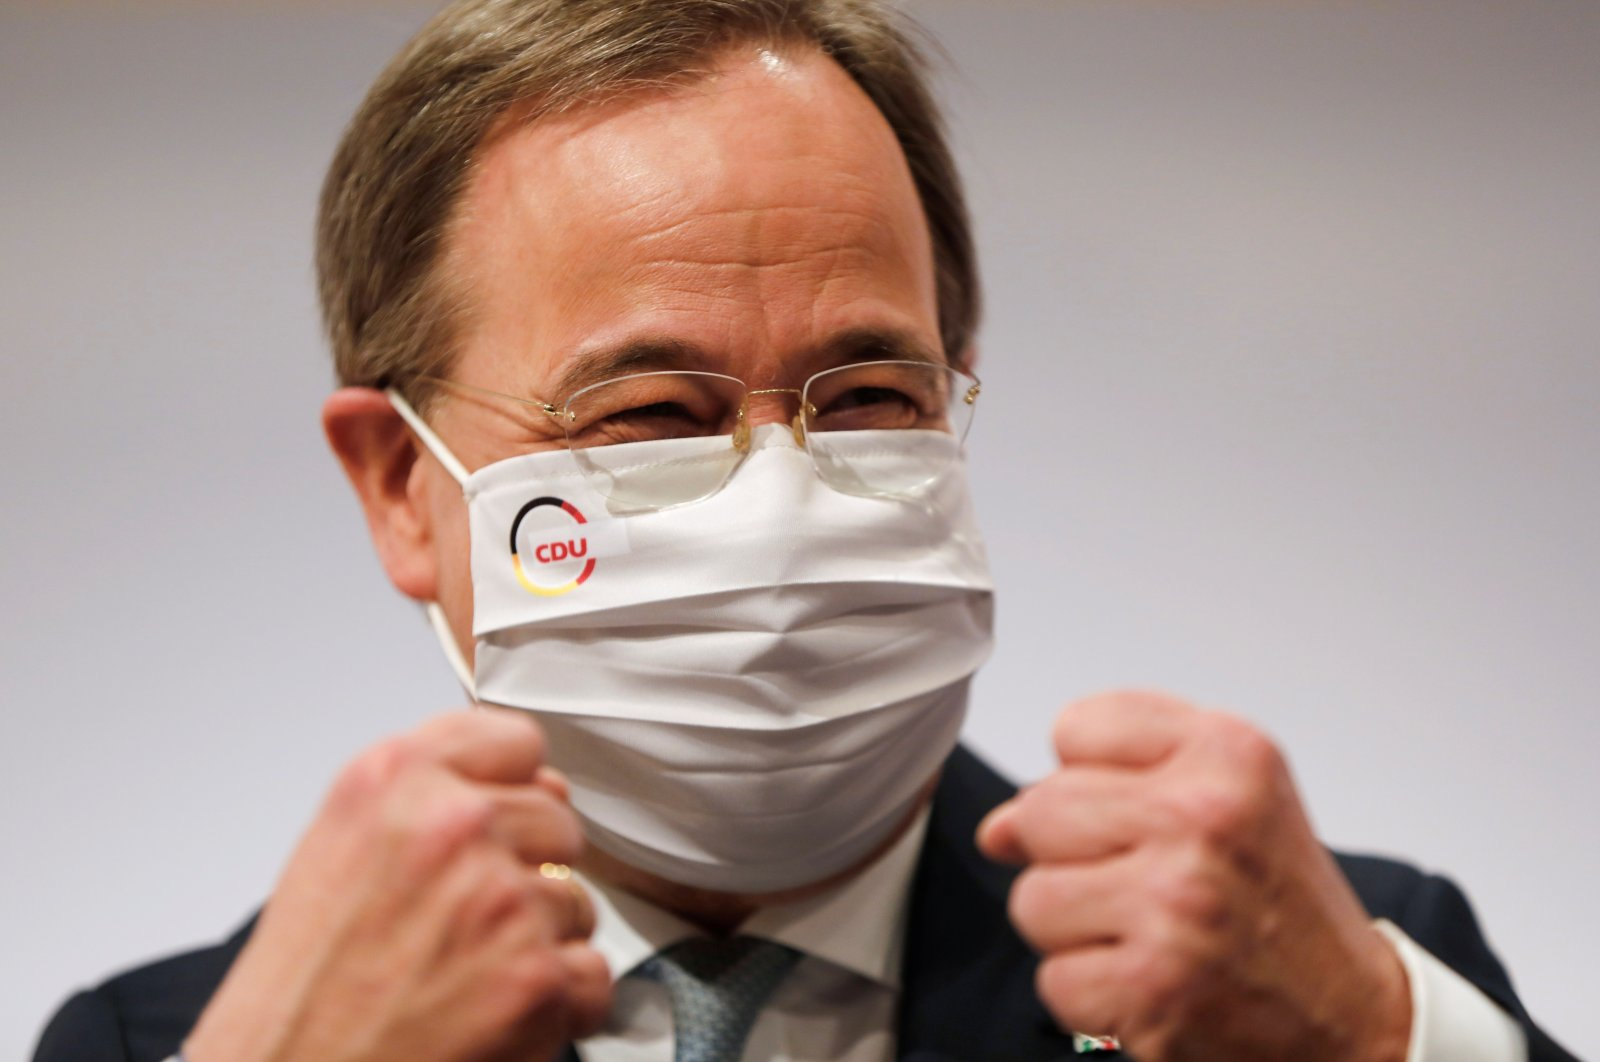 The new elected Christian Democratic Union (CDU) party leader Armin Laschet clenches his fists at the end of the party's 33rd congress held online amid the coronavirus pandemic, in Berlin, Germany, Jan. 16, 2021. (Reuters Photo)